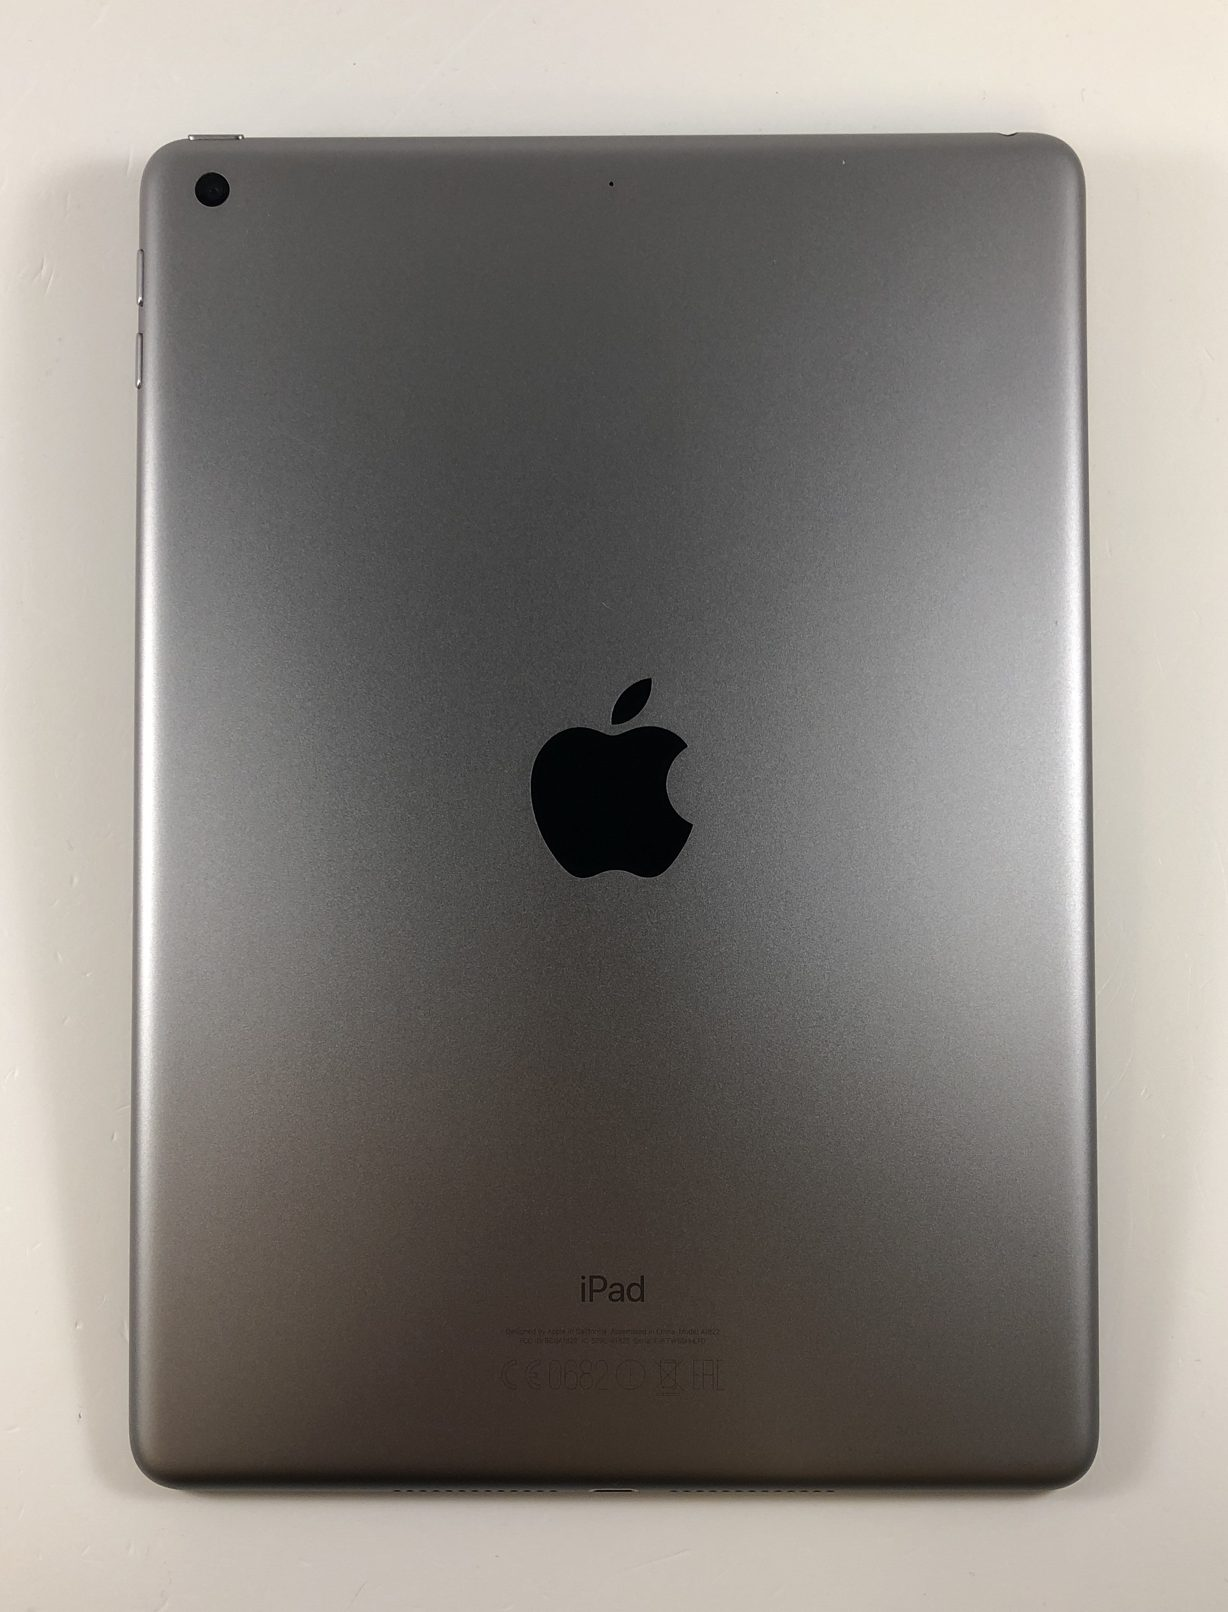 iPad 5 Wi-Fi 128GB, 128GB, Space Gray, immagine 2